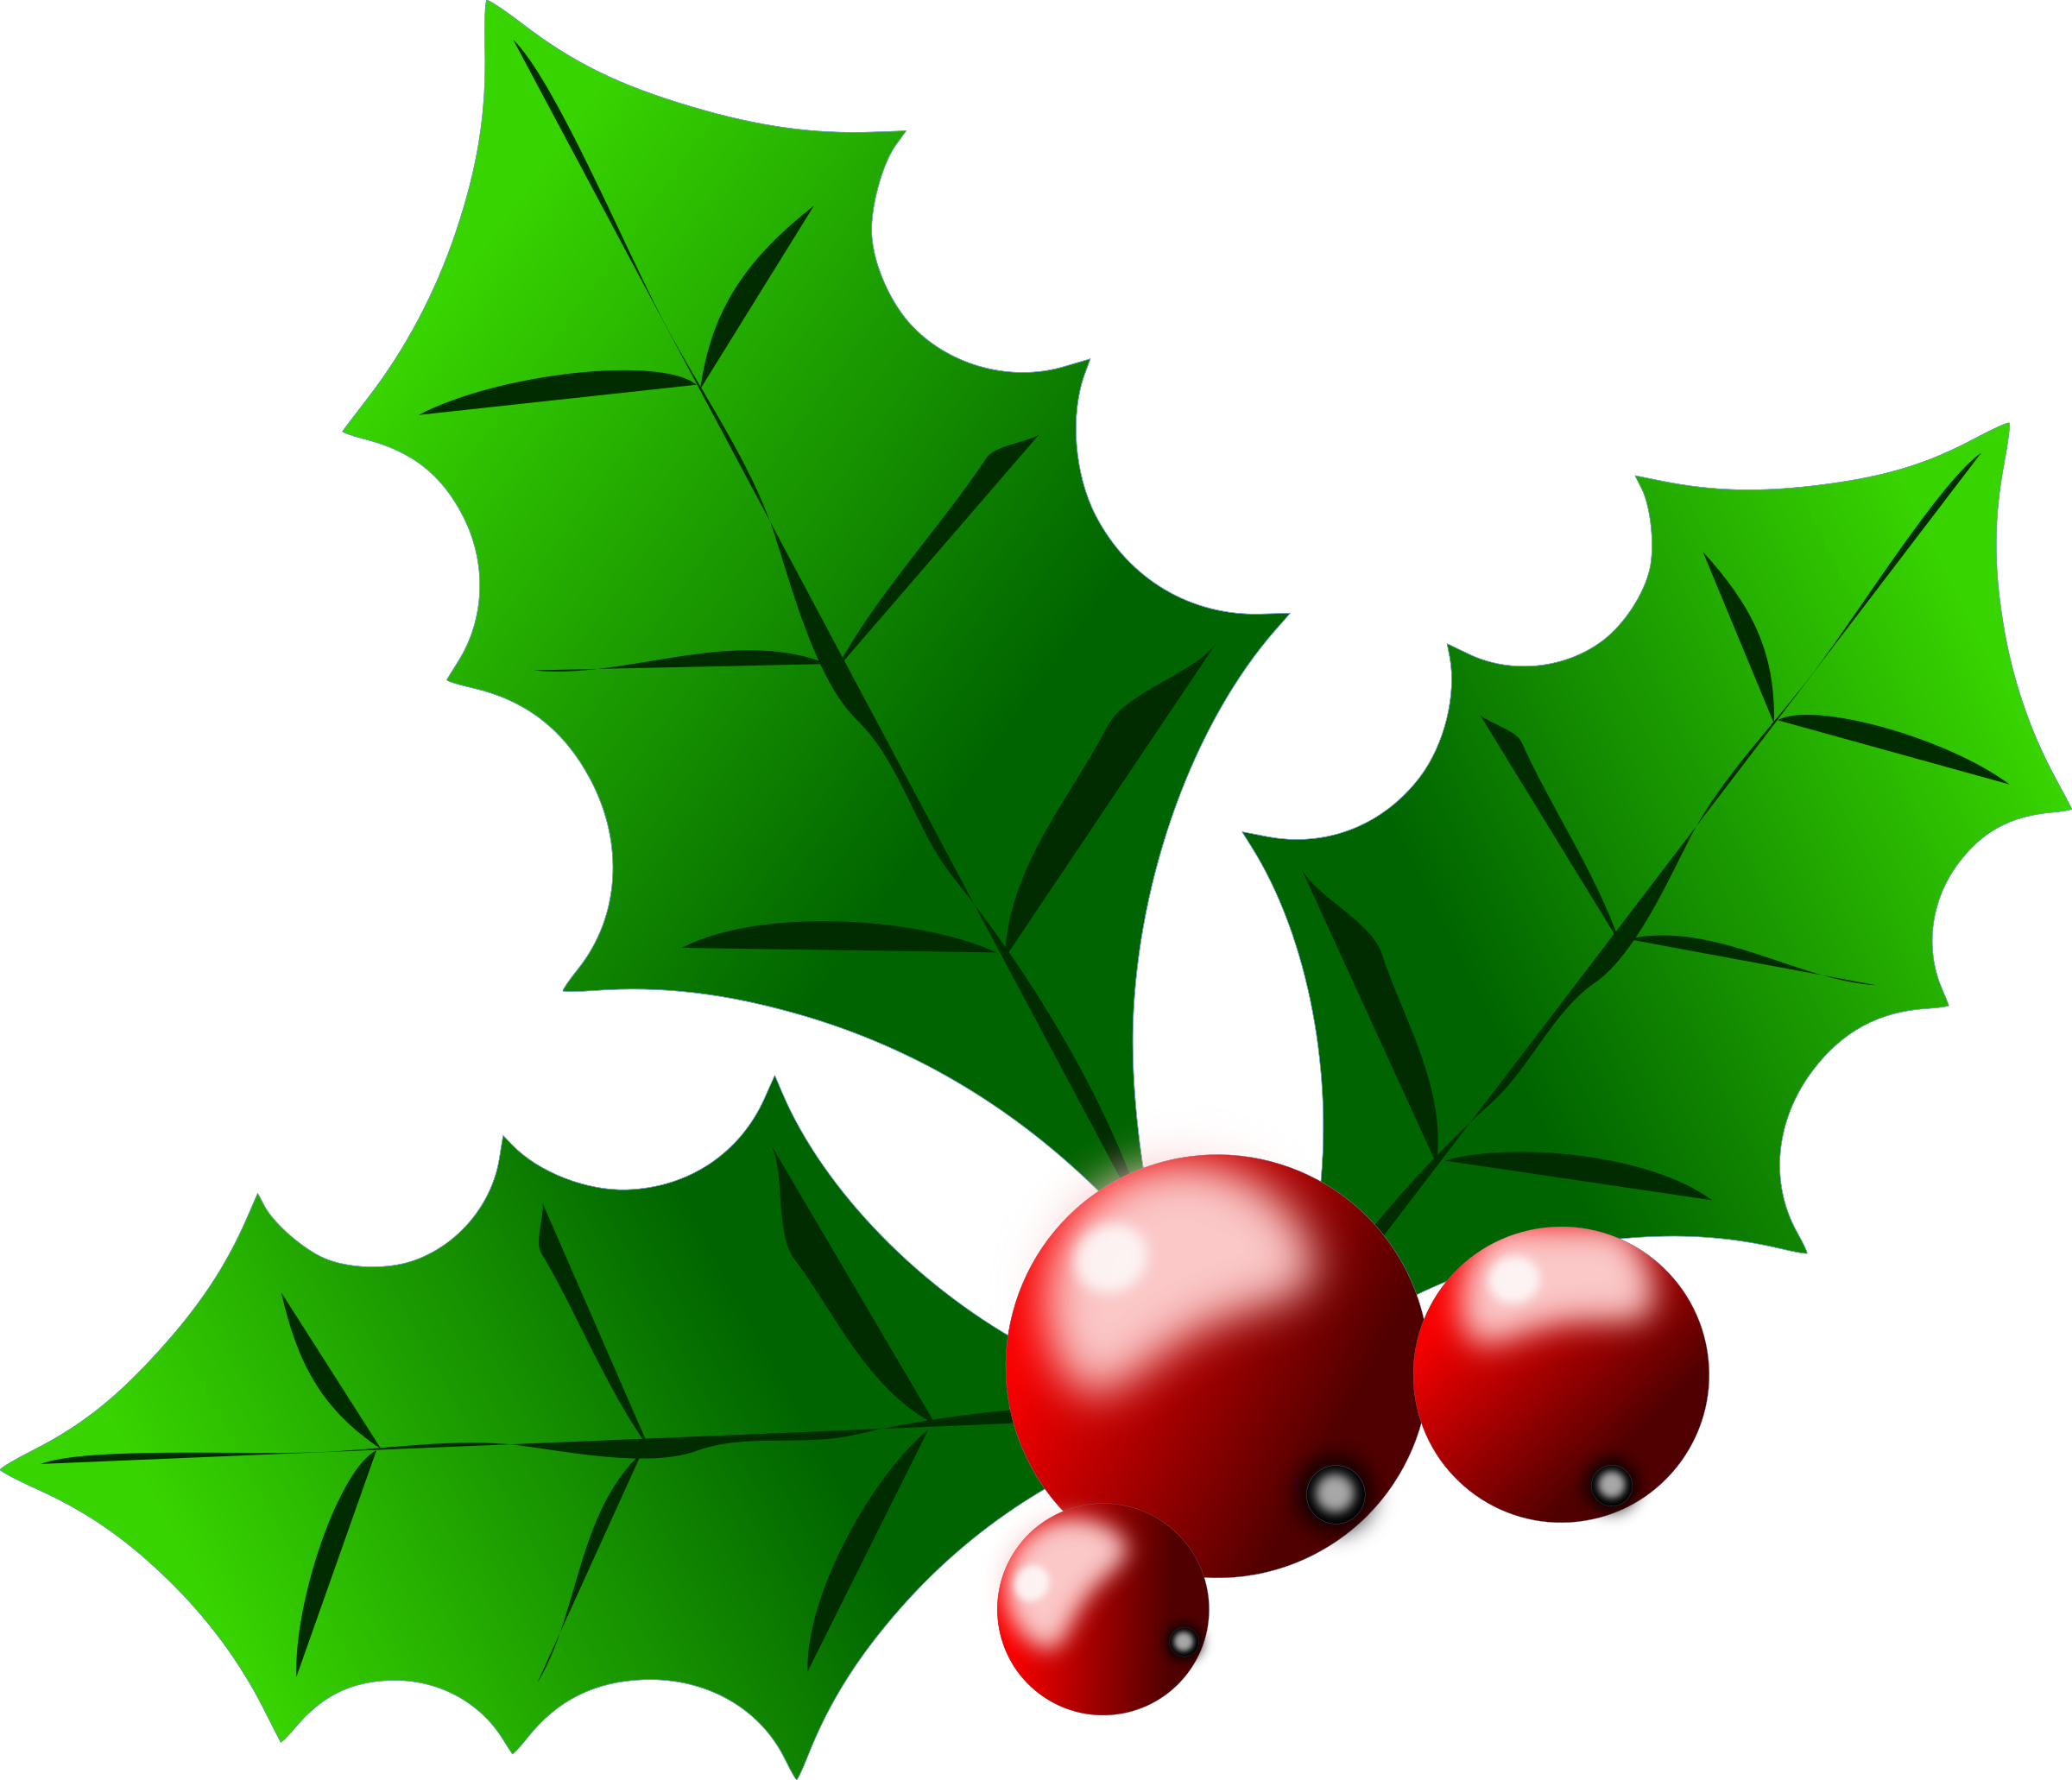 Holly leaves and berries clipart png download holly berries by @Almeidah, A stylized drawing of leaves and ... png download